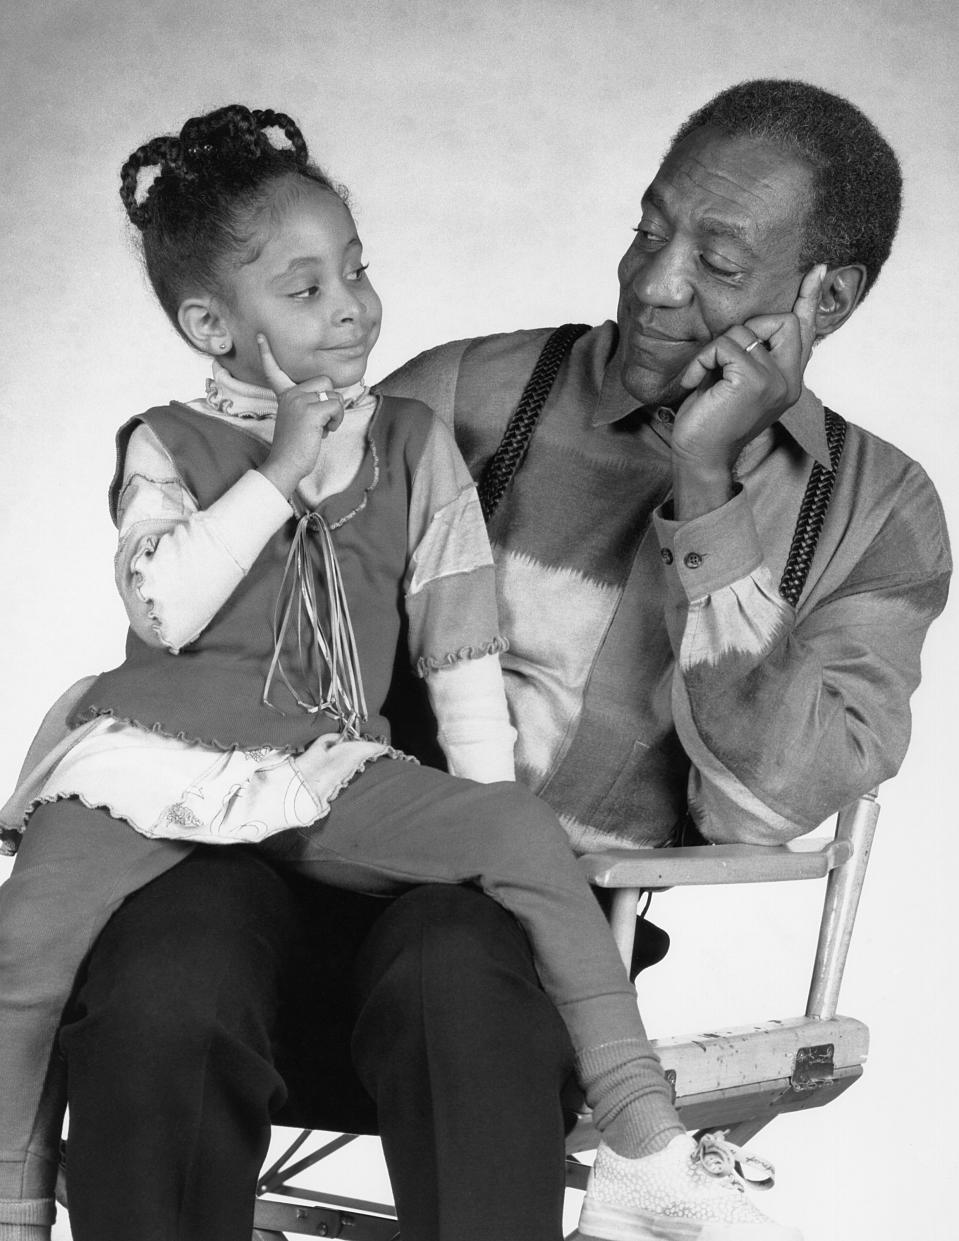 THE COSBY SHOW -- Season 7 -- Pictured: (l-r) Raven-SymonT Pearman as Olivia Kendall, Bill Cosby as Dr. Heathcliff 'Cliff' Huxtable  (Photo by Alan Singer/NBCU Photo Bank/NBCUniversal via Getty Images via Getty Images)